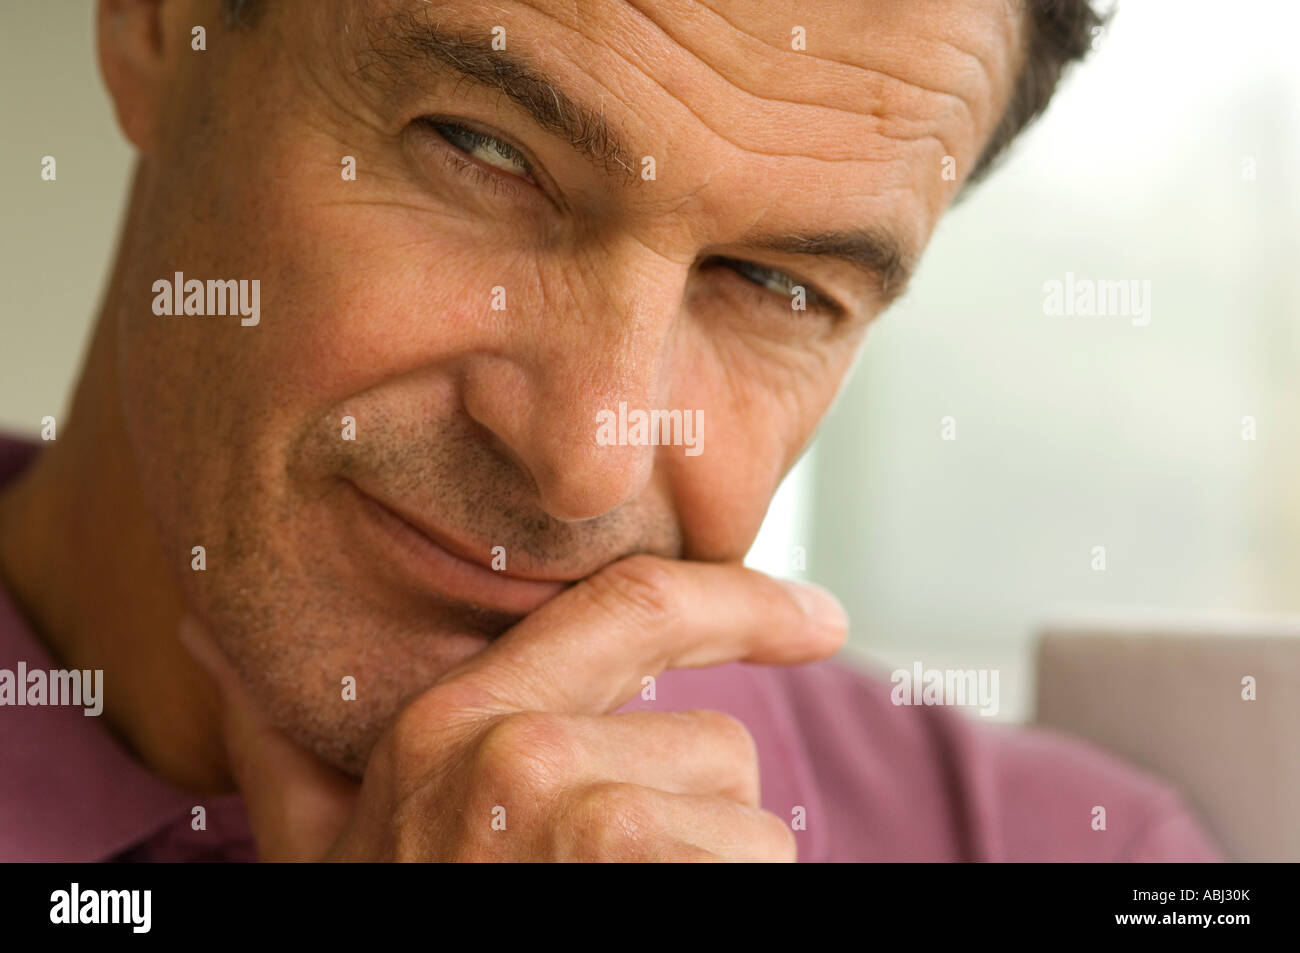 Thoughtfull man's portrait, indoors - Stock Image